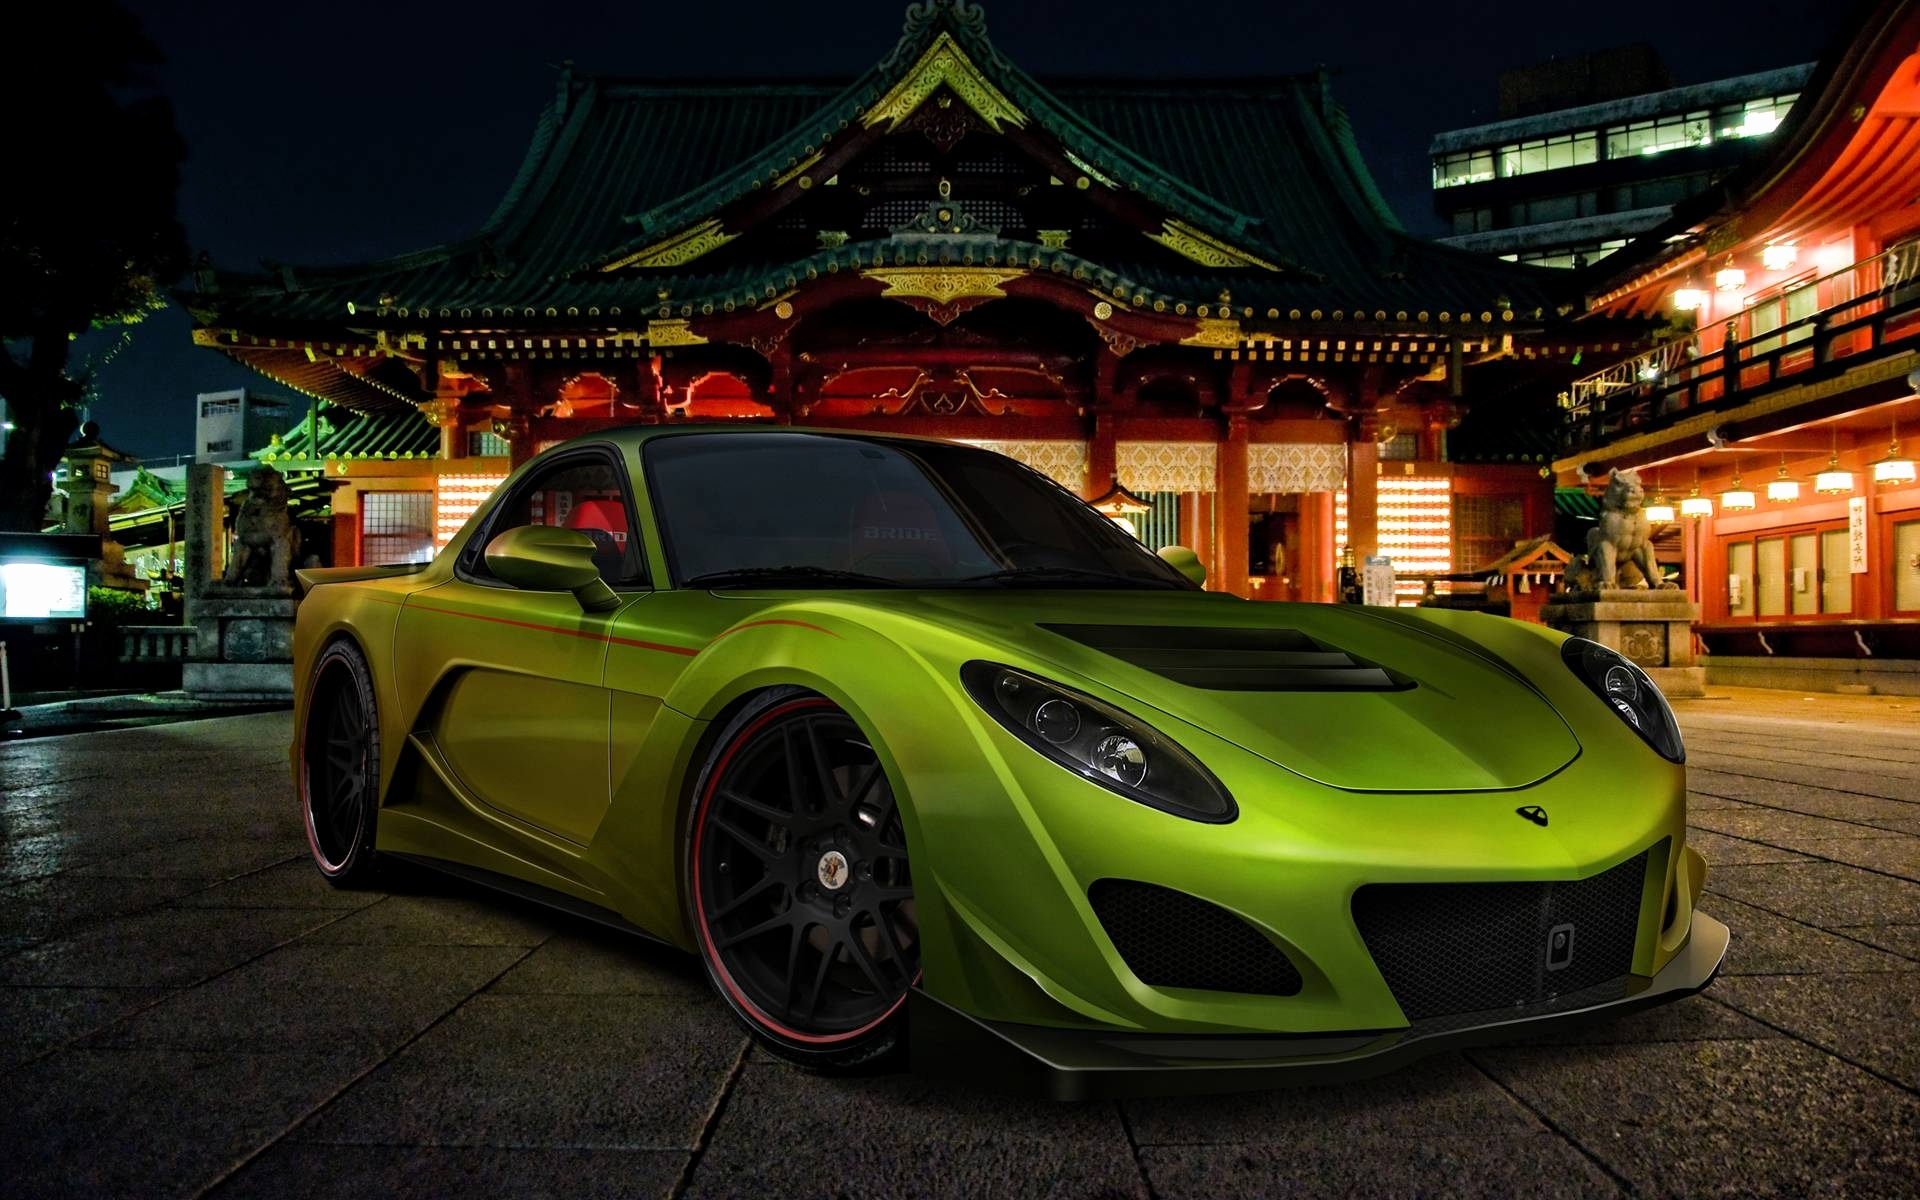 10 Latest Cool Cars Wallpaper Background FULL HD 1920x1080 For PC 2018 Free